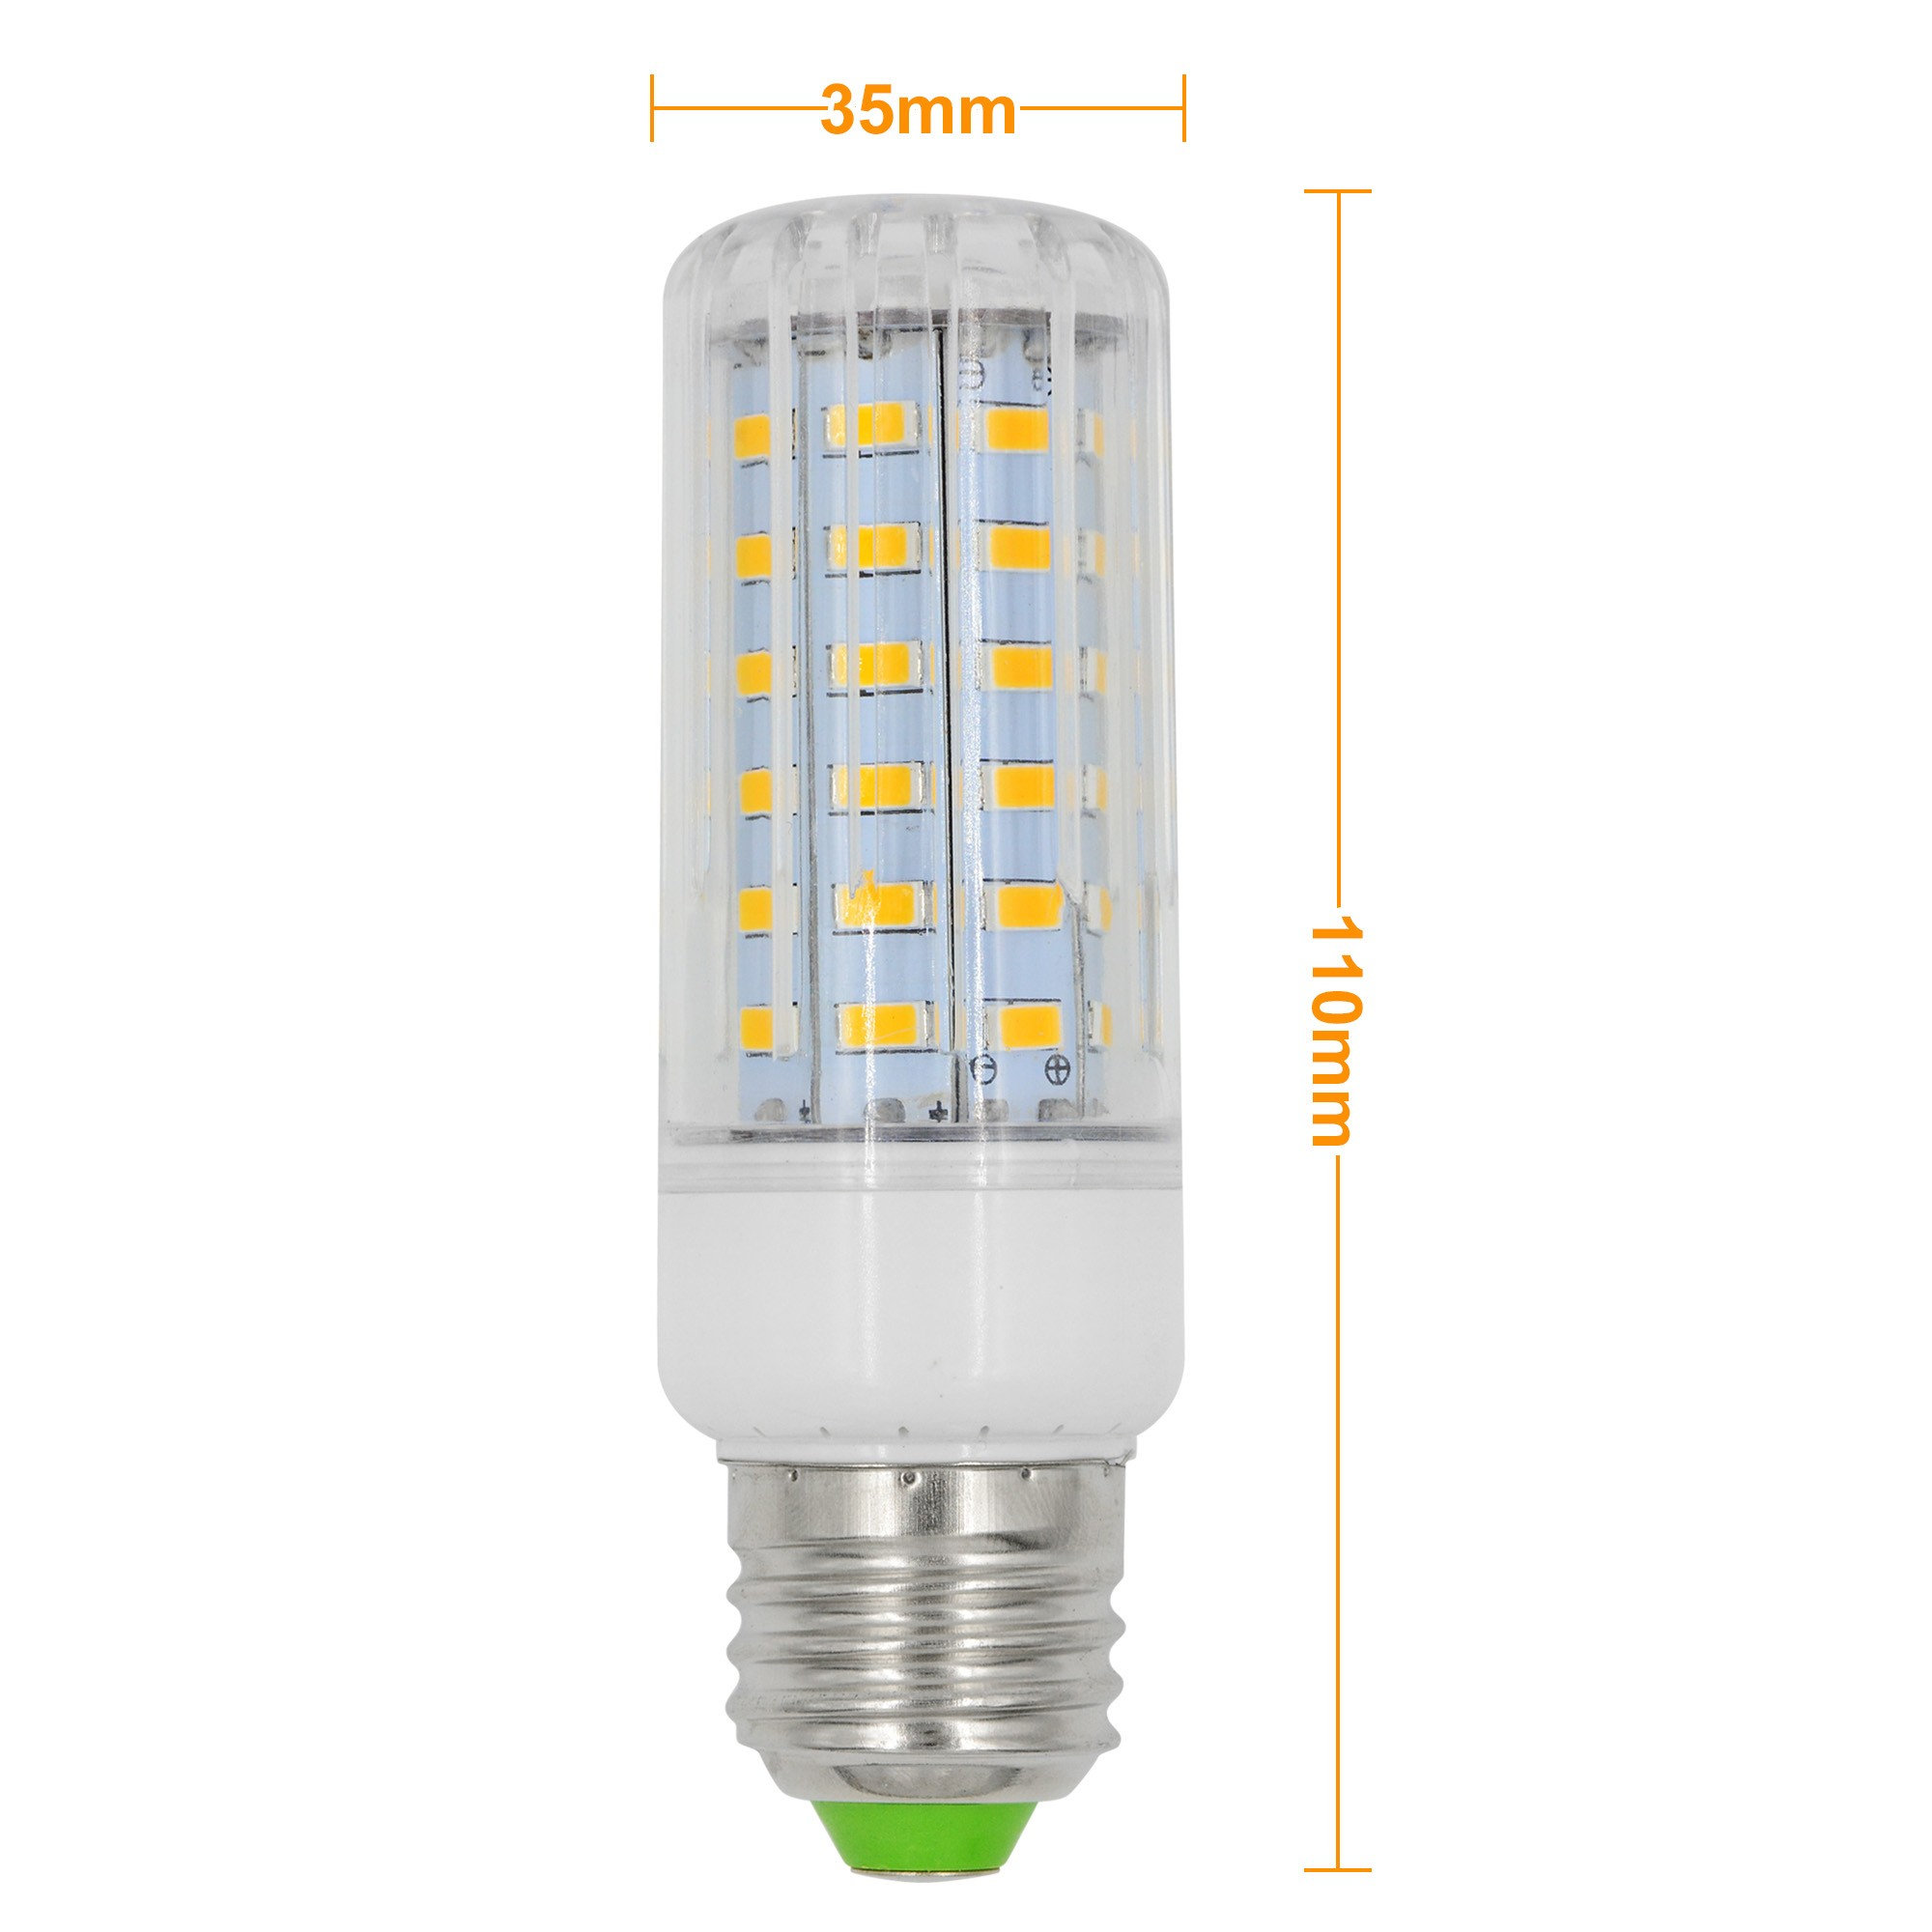 mengsled mengs e27 9w led dimmable corn light 60x 5736 smd led bulb lamp ac 220 240v in warm. Black Bedroom Furniture Sets. Home Design Ideas